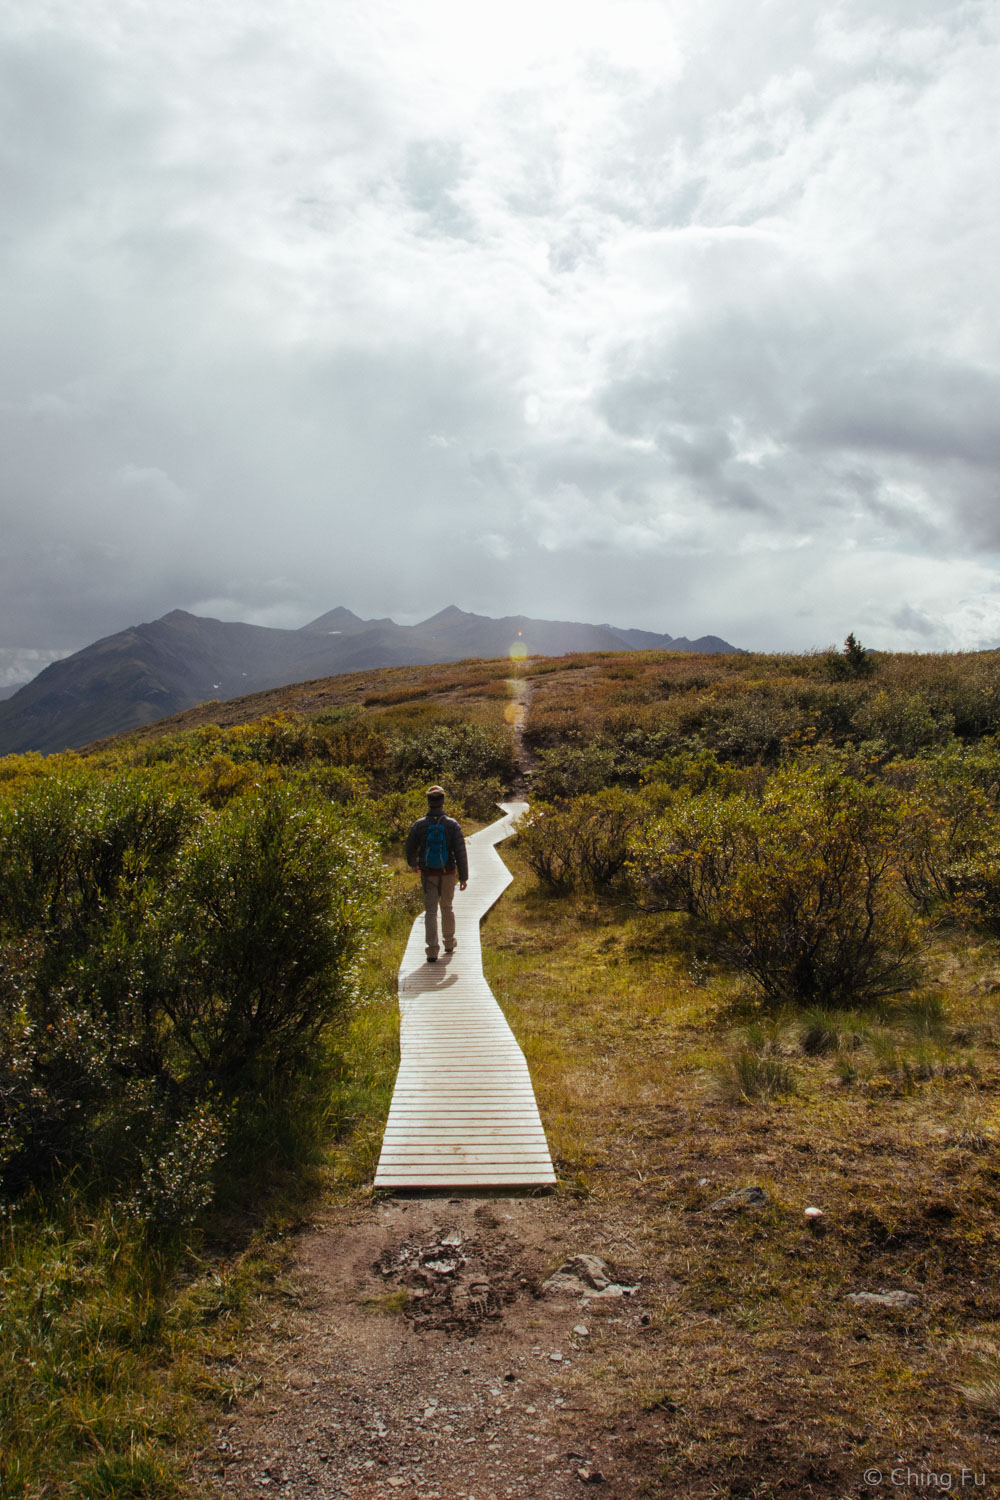 Goldensides trail in Tombstone Territorial Park.